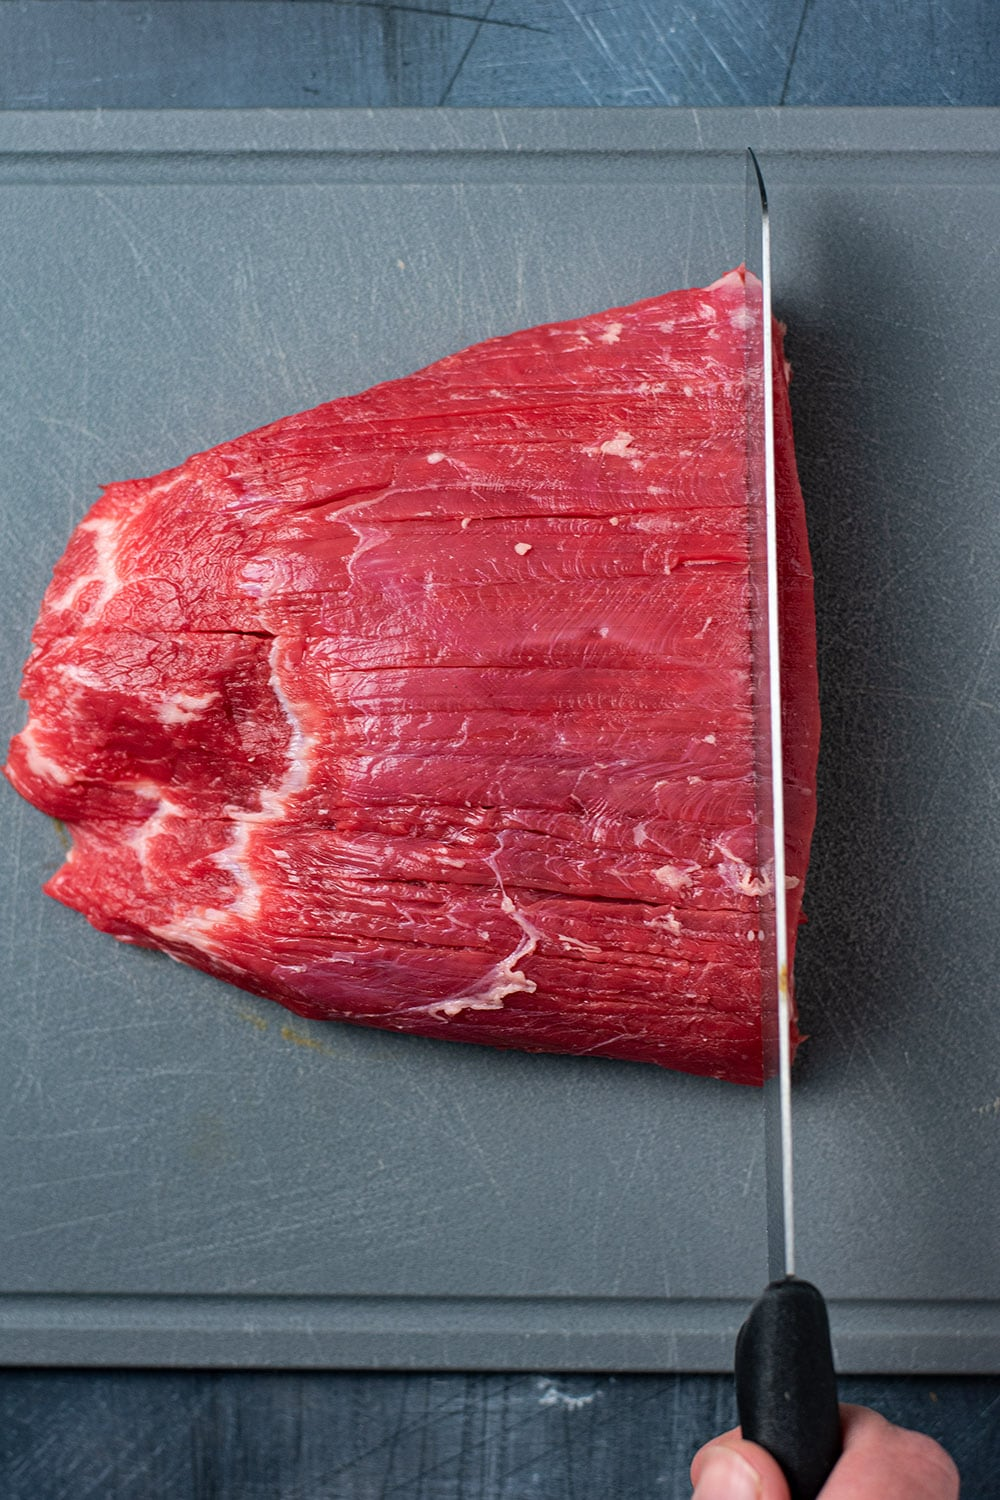 Cutting flank steak